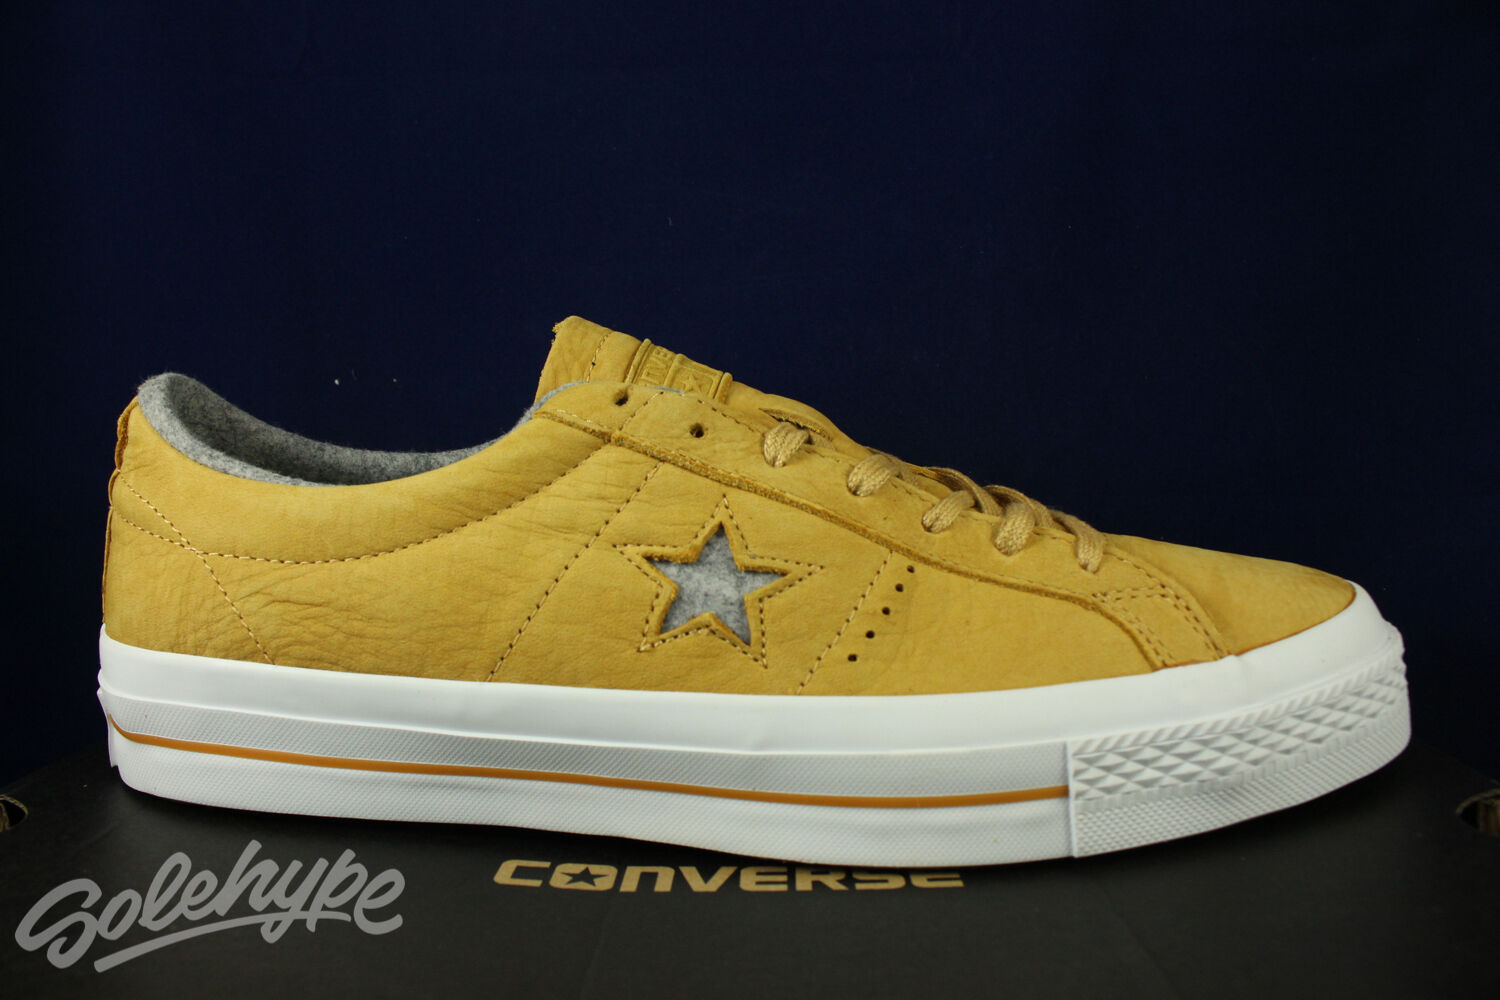 CONVERSE ONE STAR OX NUBUCK SOBA YELLOW ASH GREY 153718C SZ 11.5